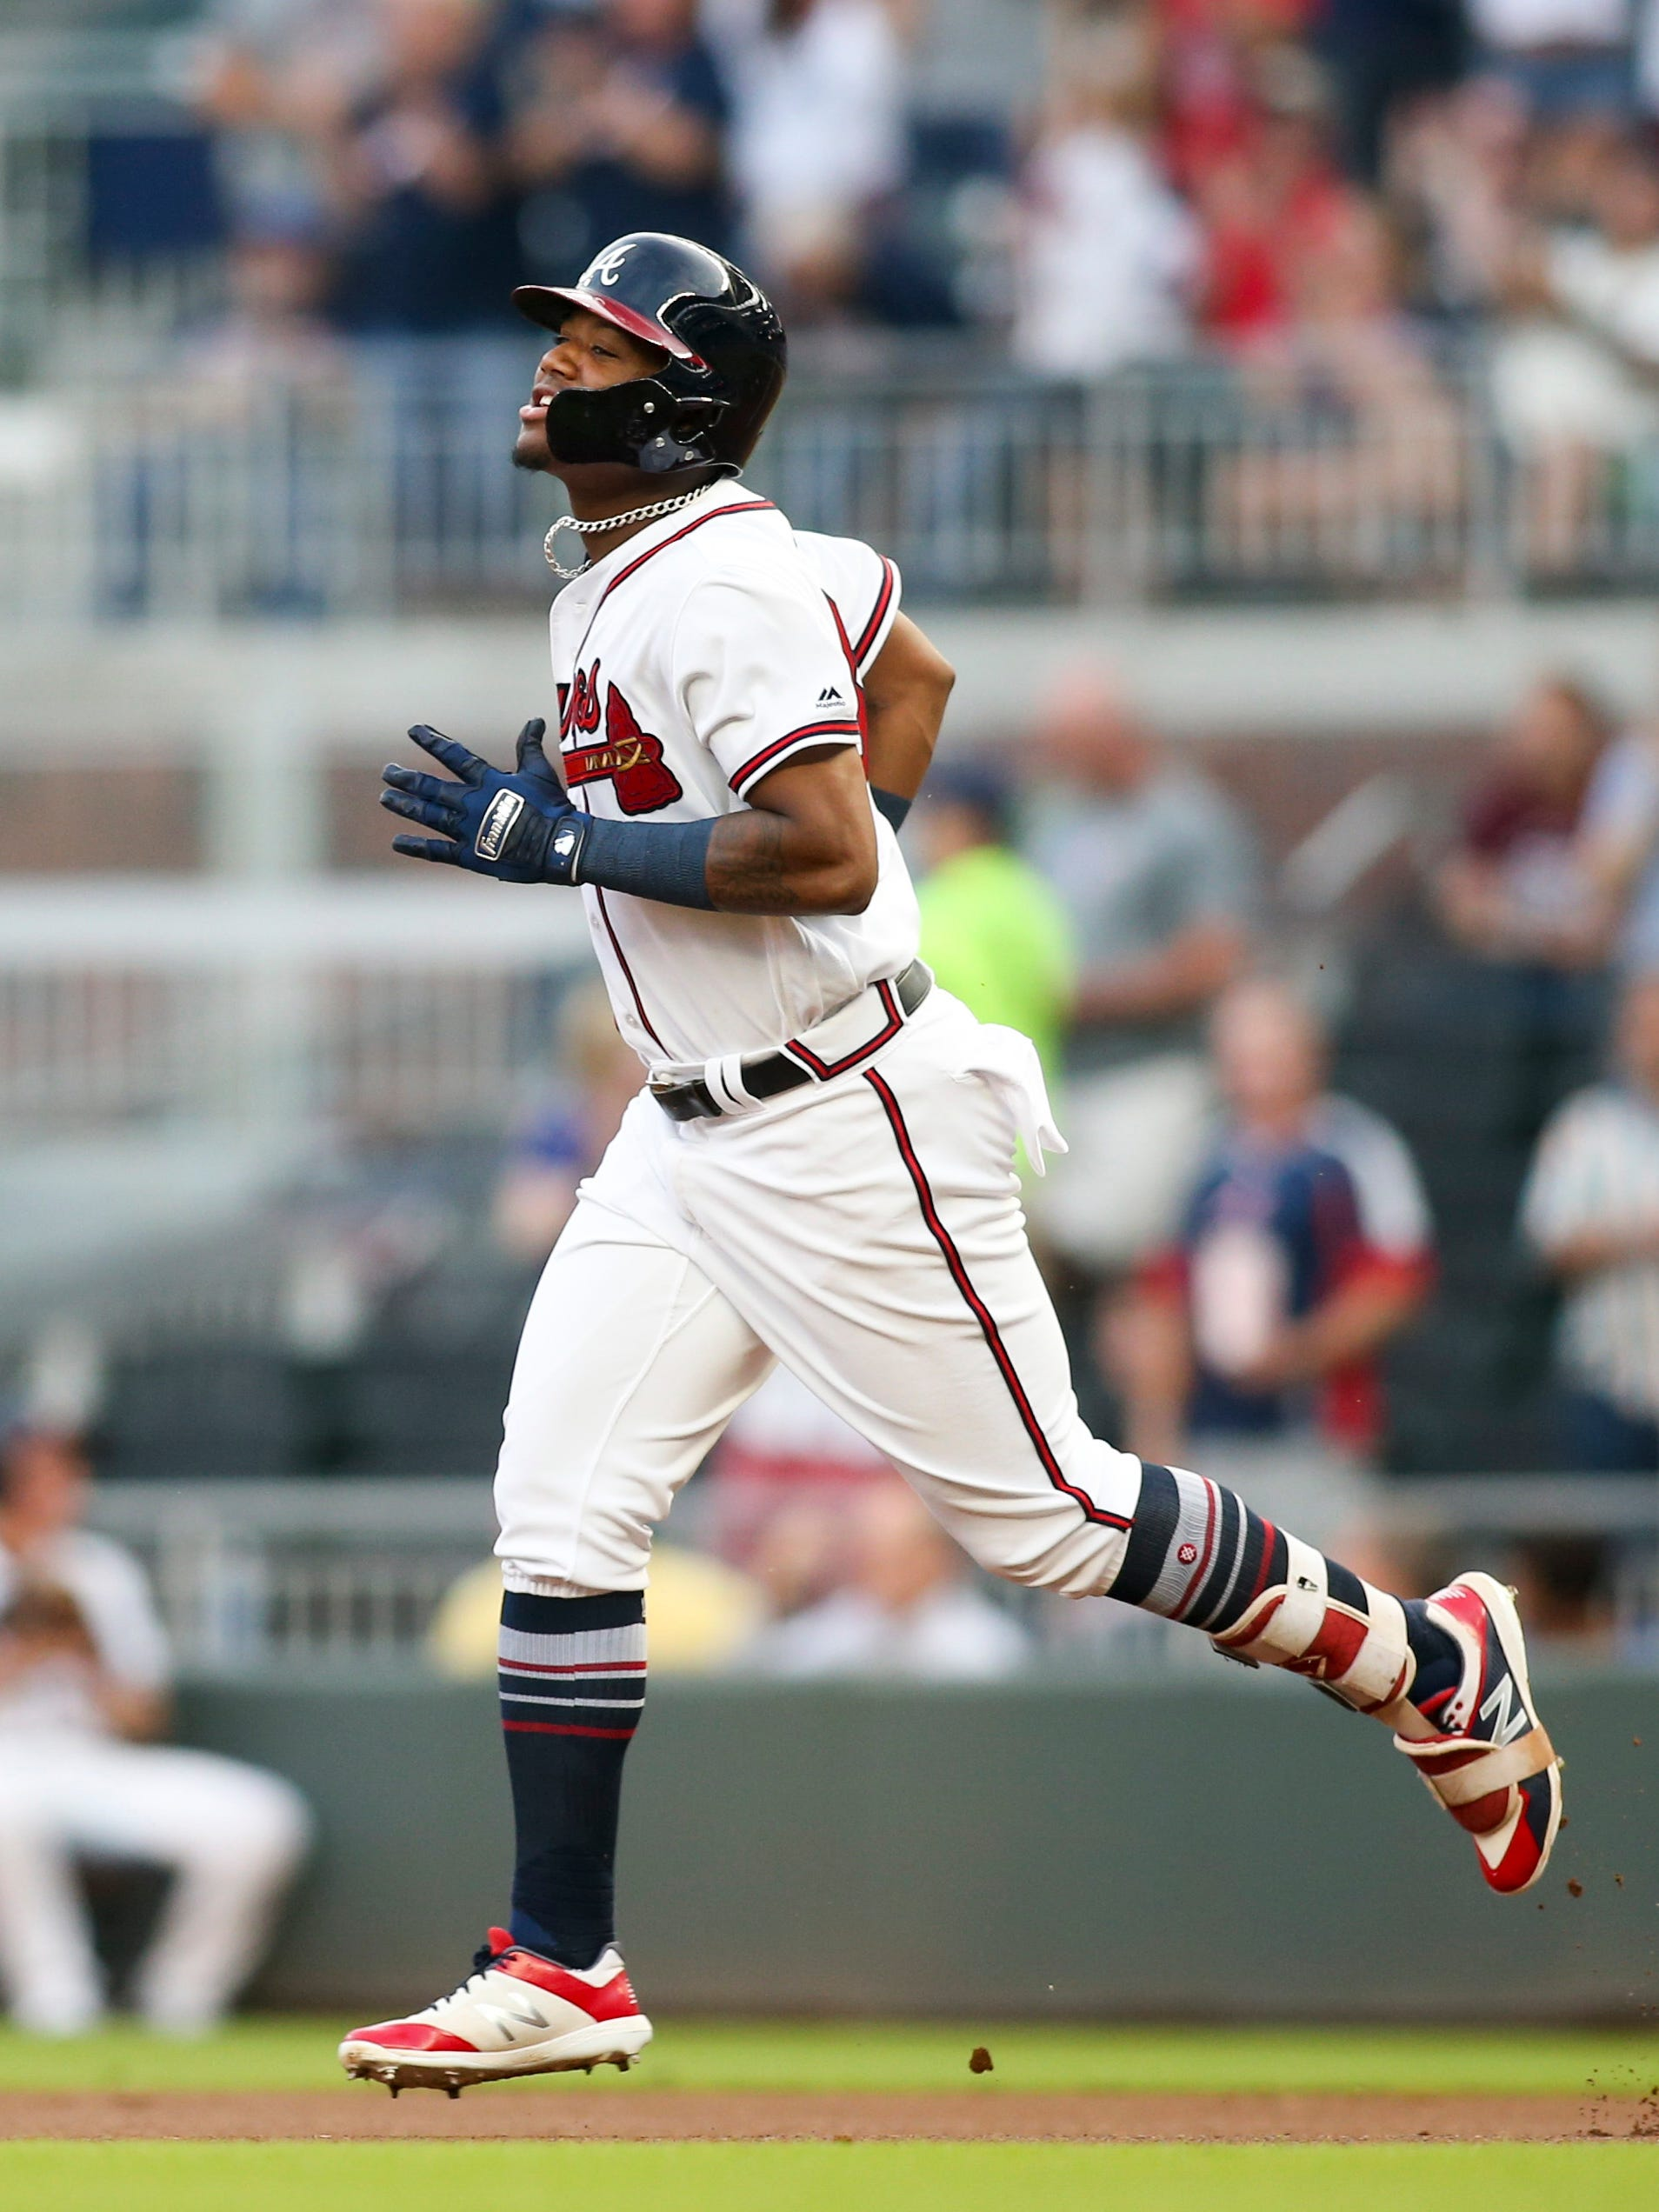 Braves outfielder Ronald Acuna Jr. circles the bases after hitting yet another leadoff home run.